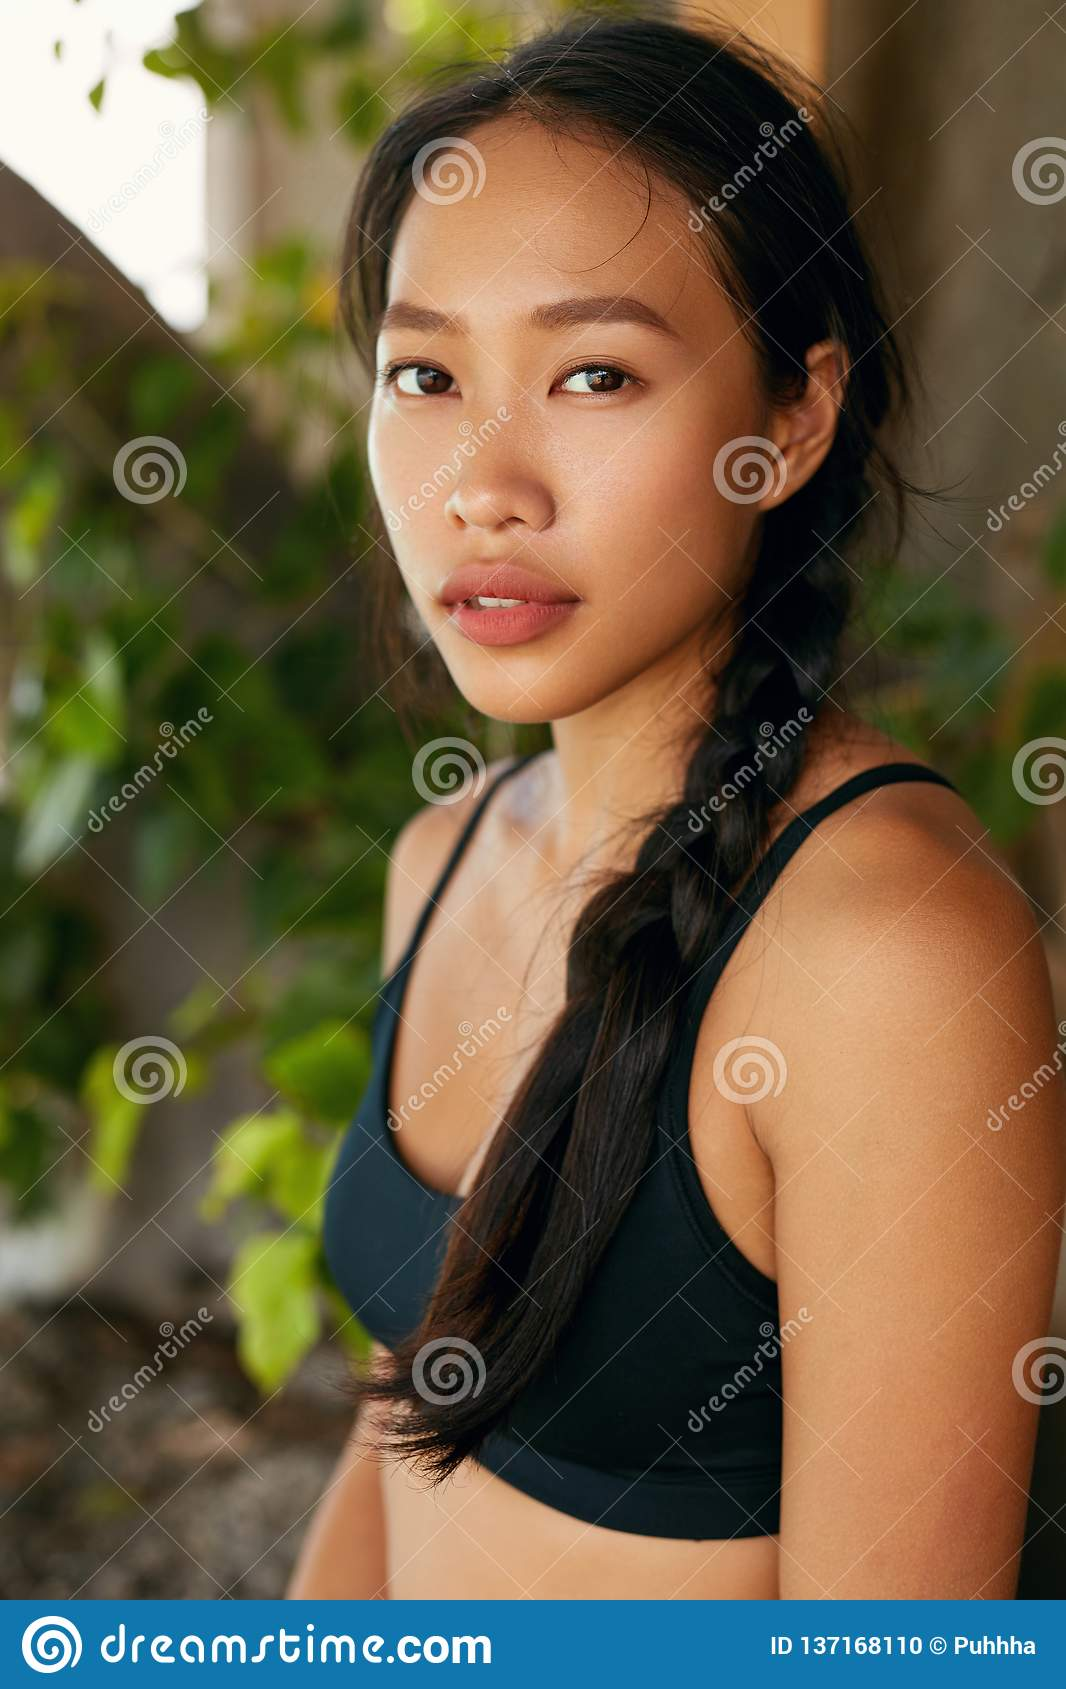 https://thumbs.dreamstime.com/z/portrait-beautiful-asian-woman-natural-beauty-face-thai-girl-tanned-skin-full-lips-high-resolution-137168110.jpg